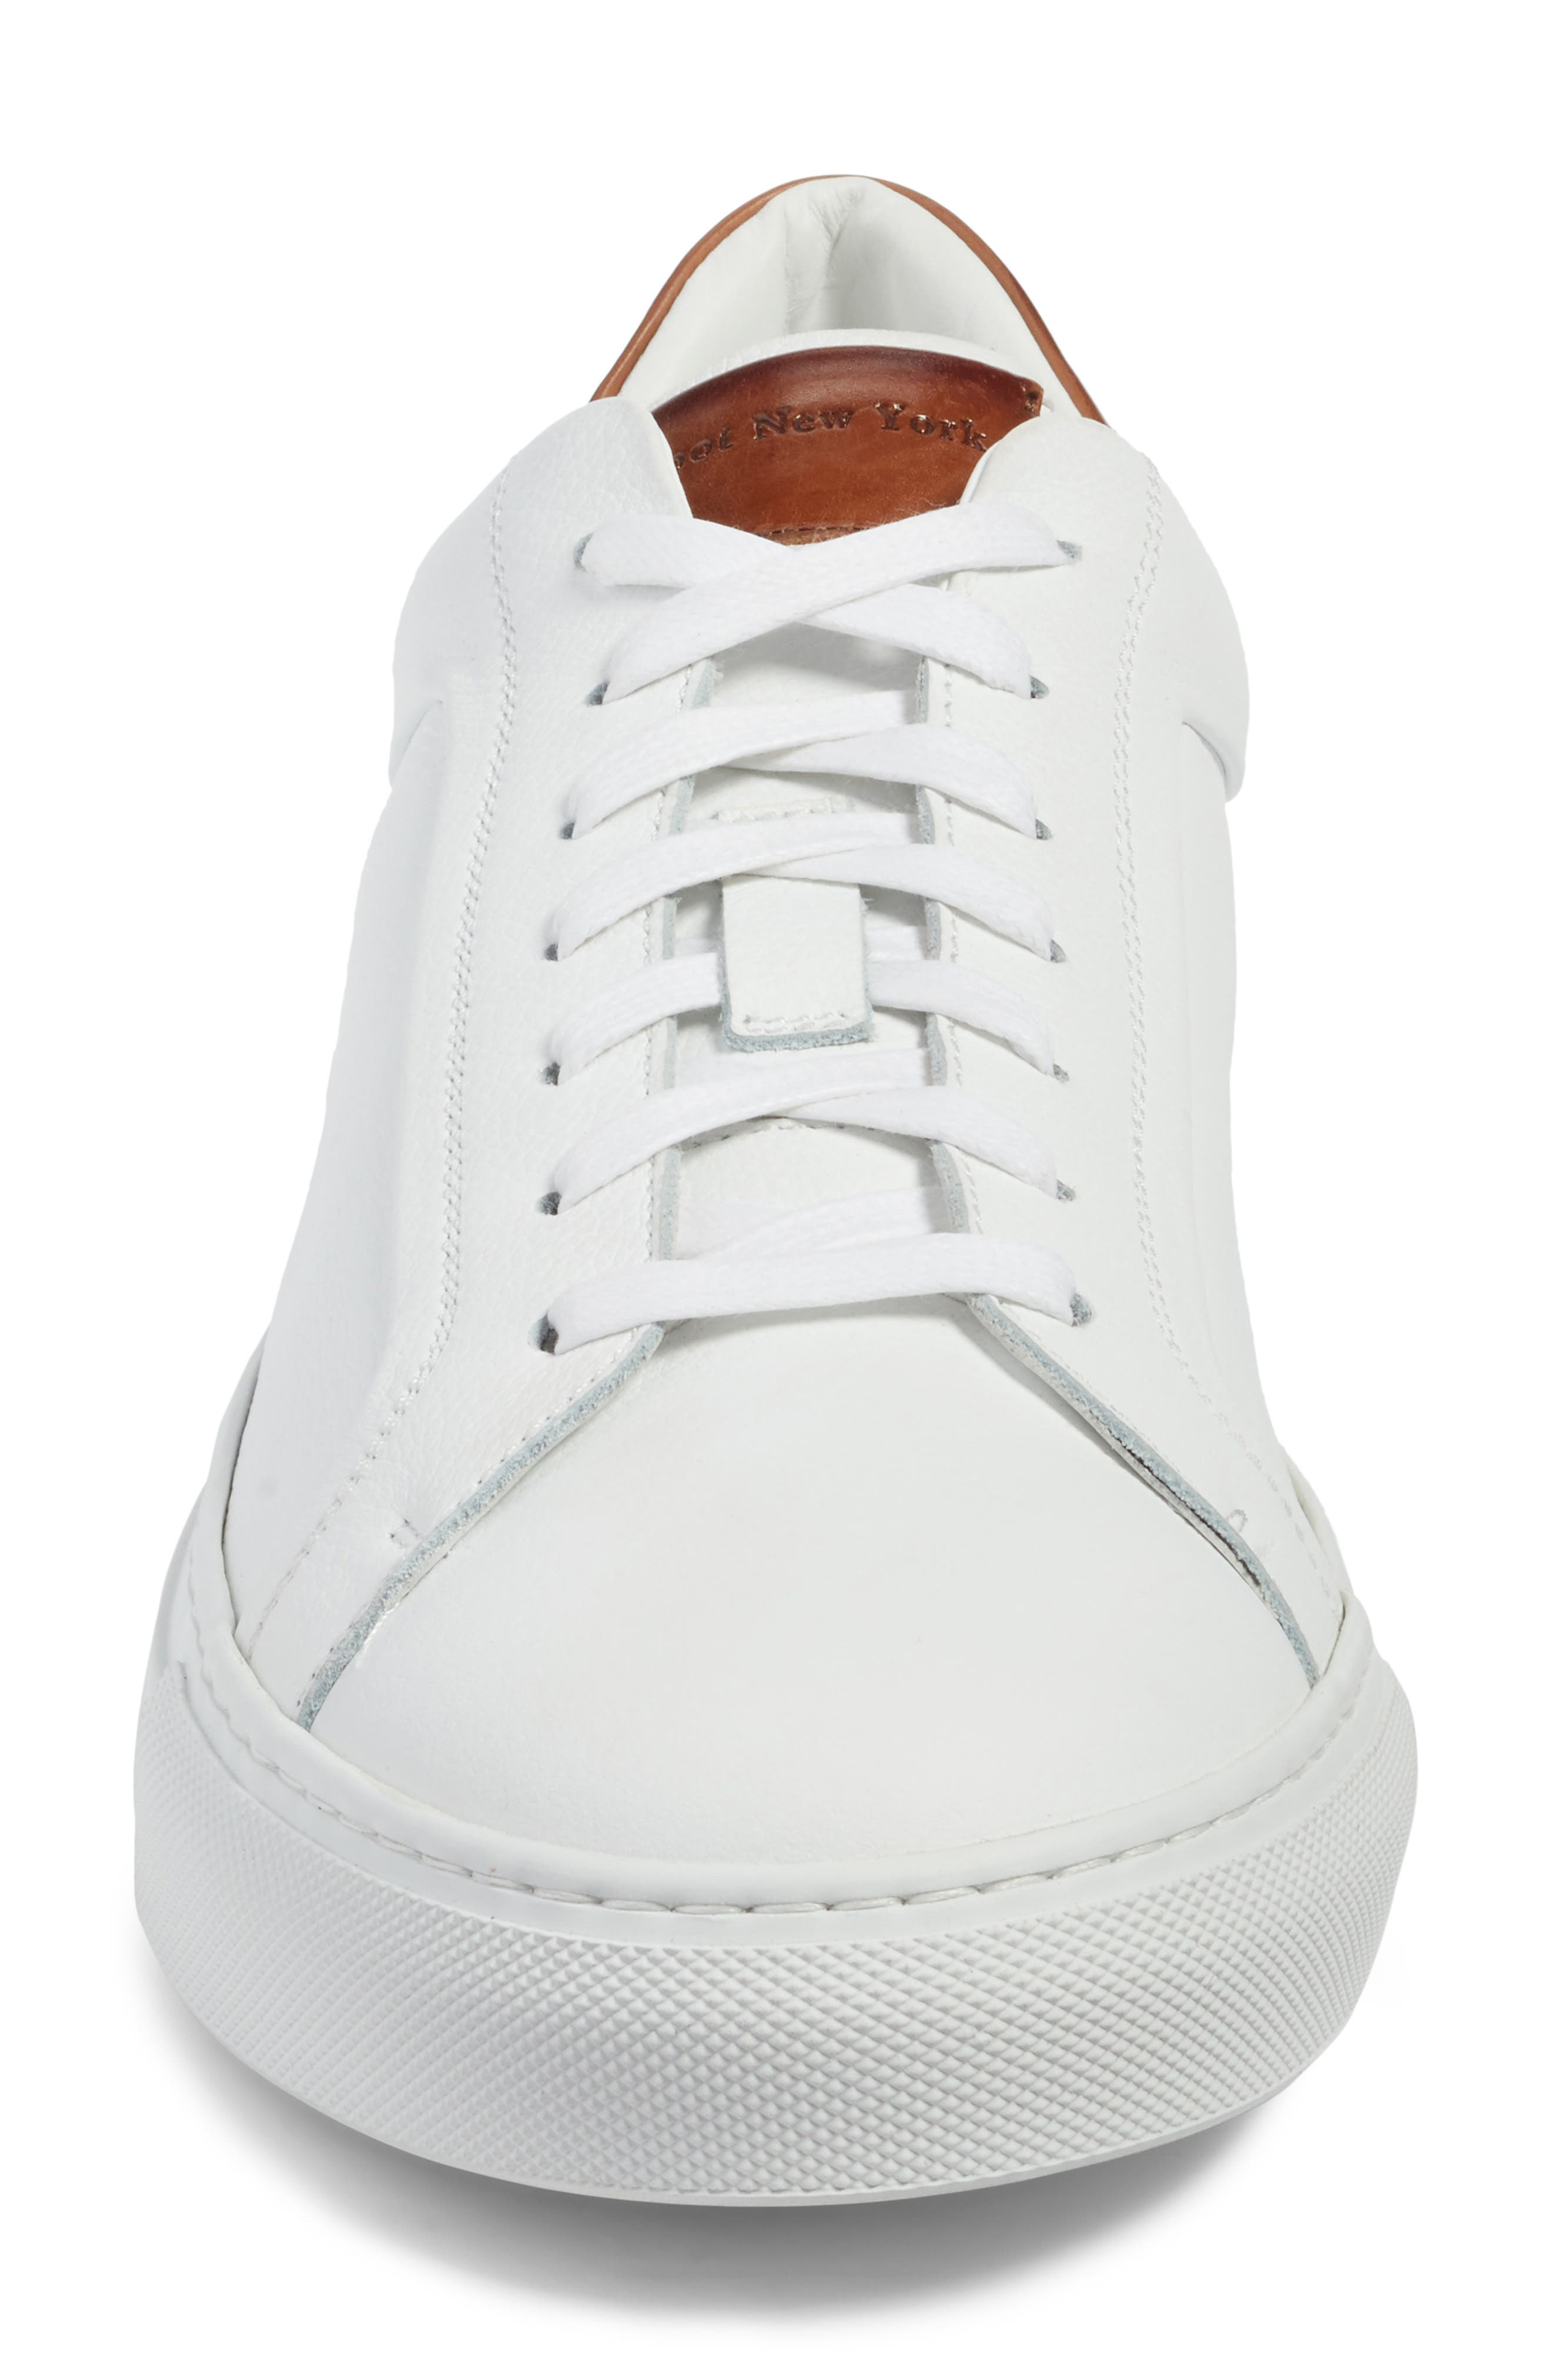 Carlin Sneaker,                             Alternate thumbnail 4, color,                             White/ Tan Leather